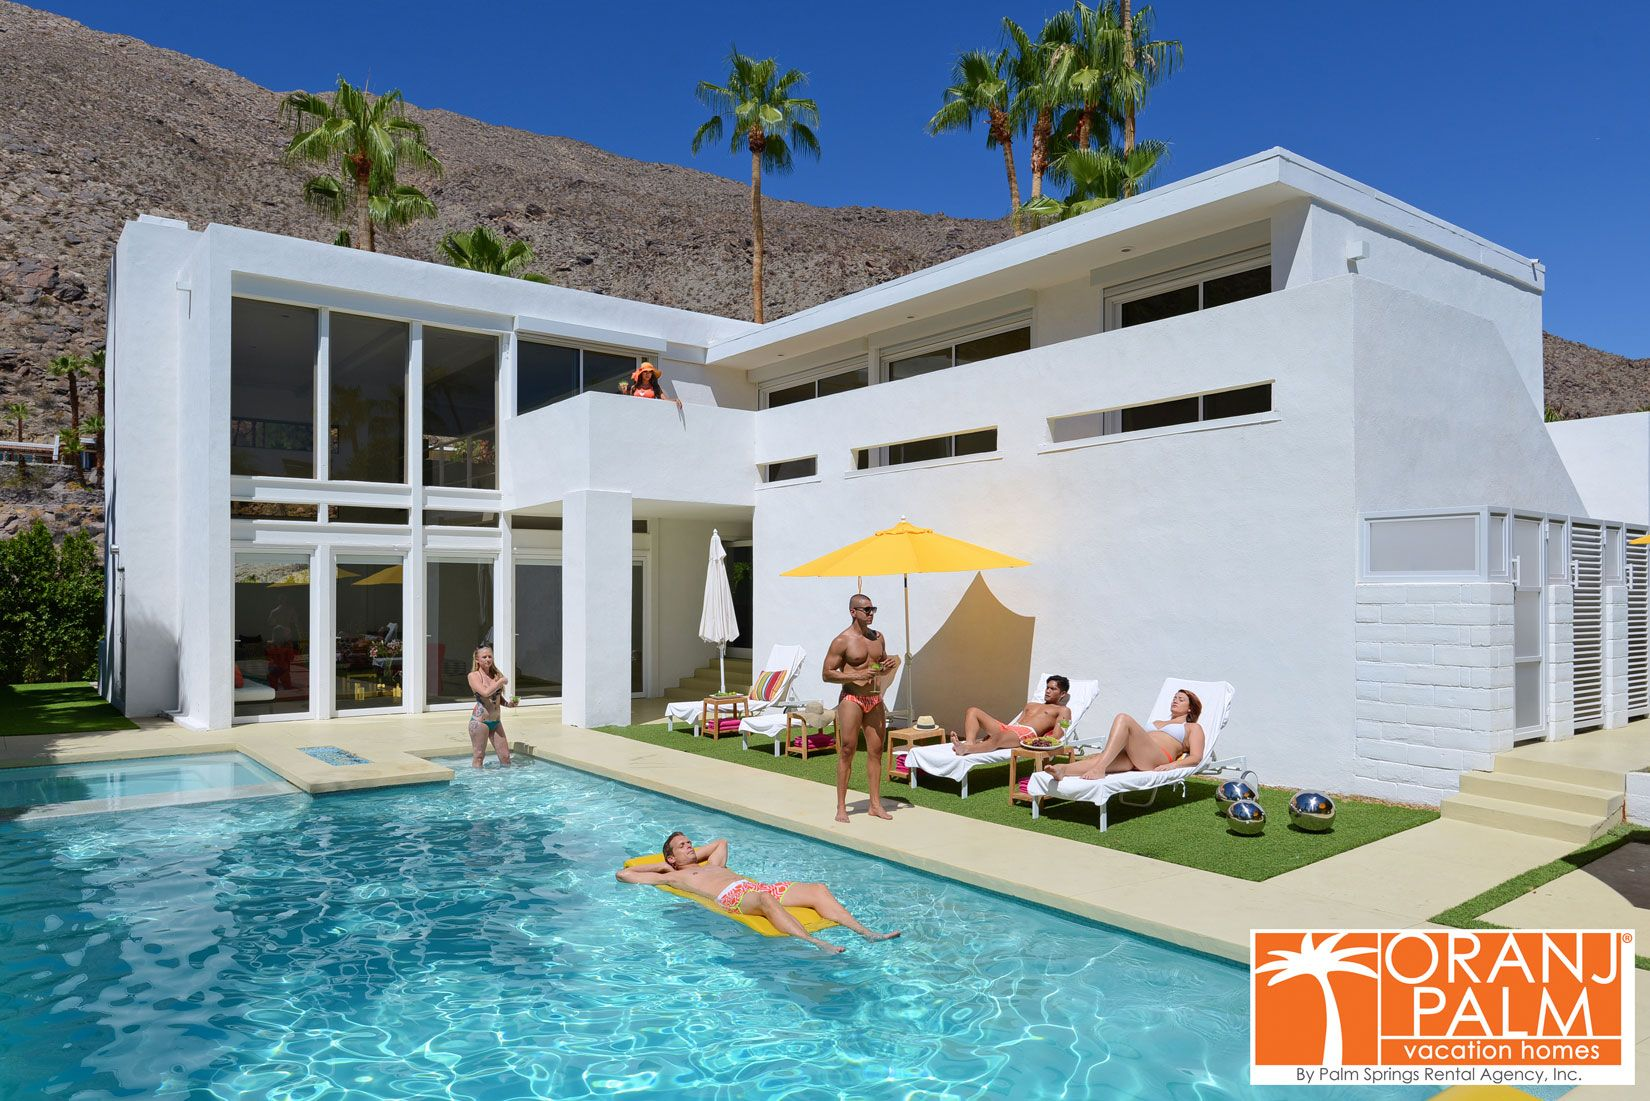 Oranj Palm Vacation Homes   Palm Springs Luxury Estates